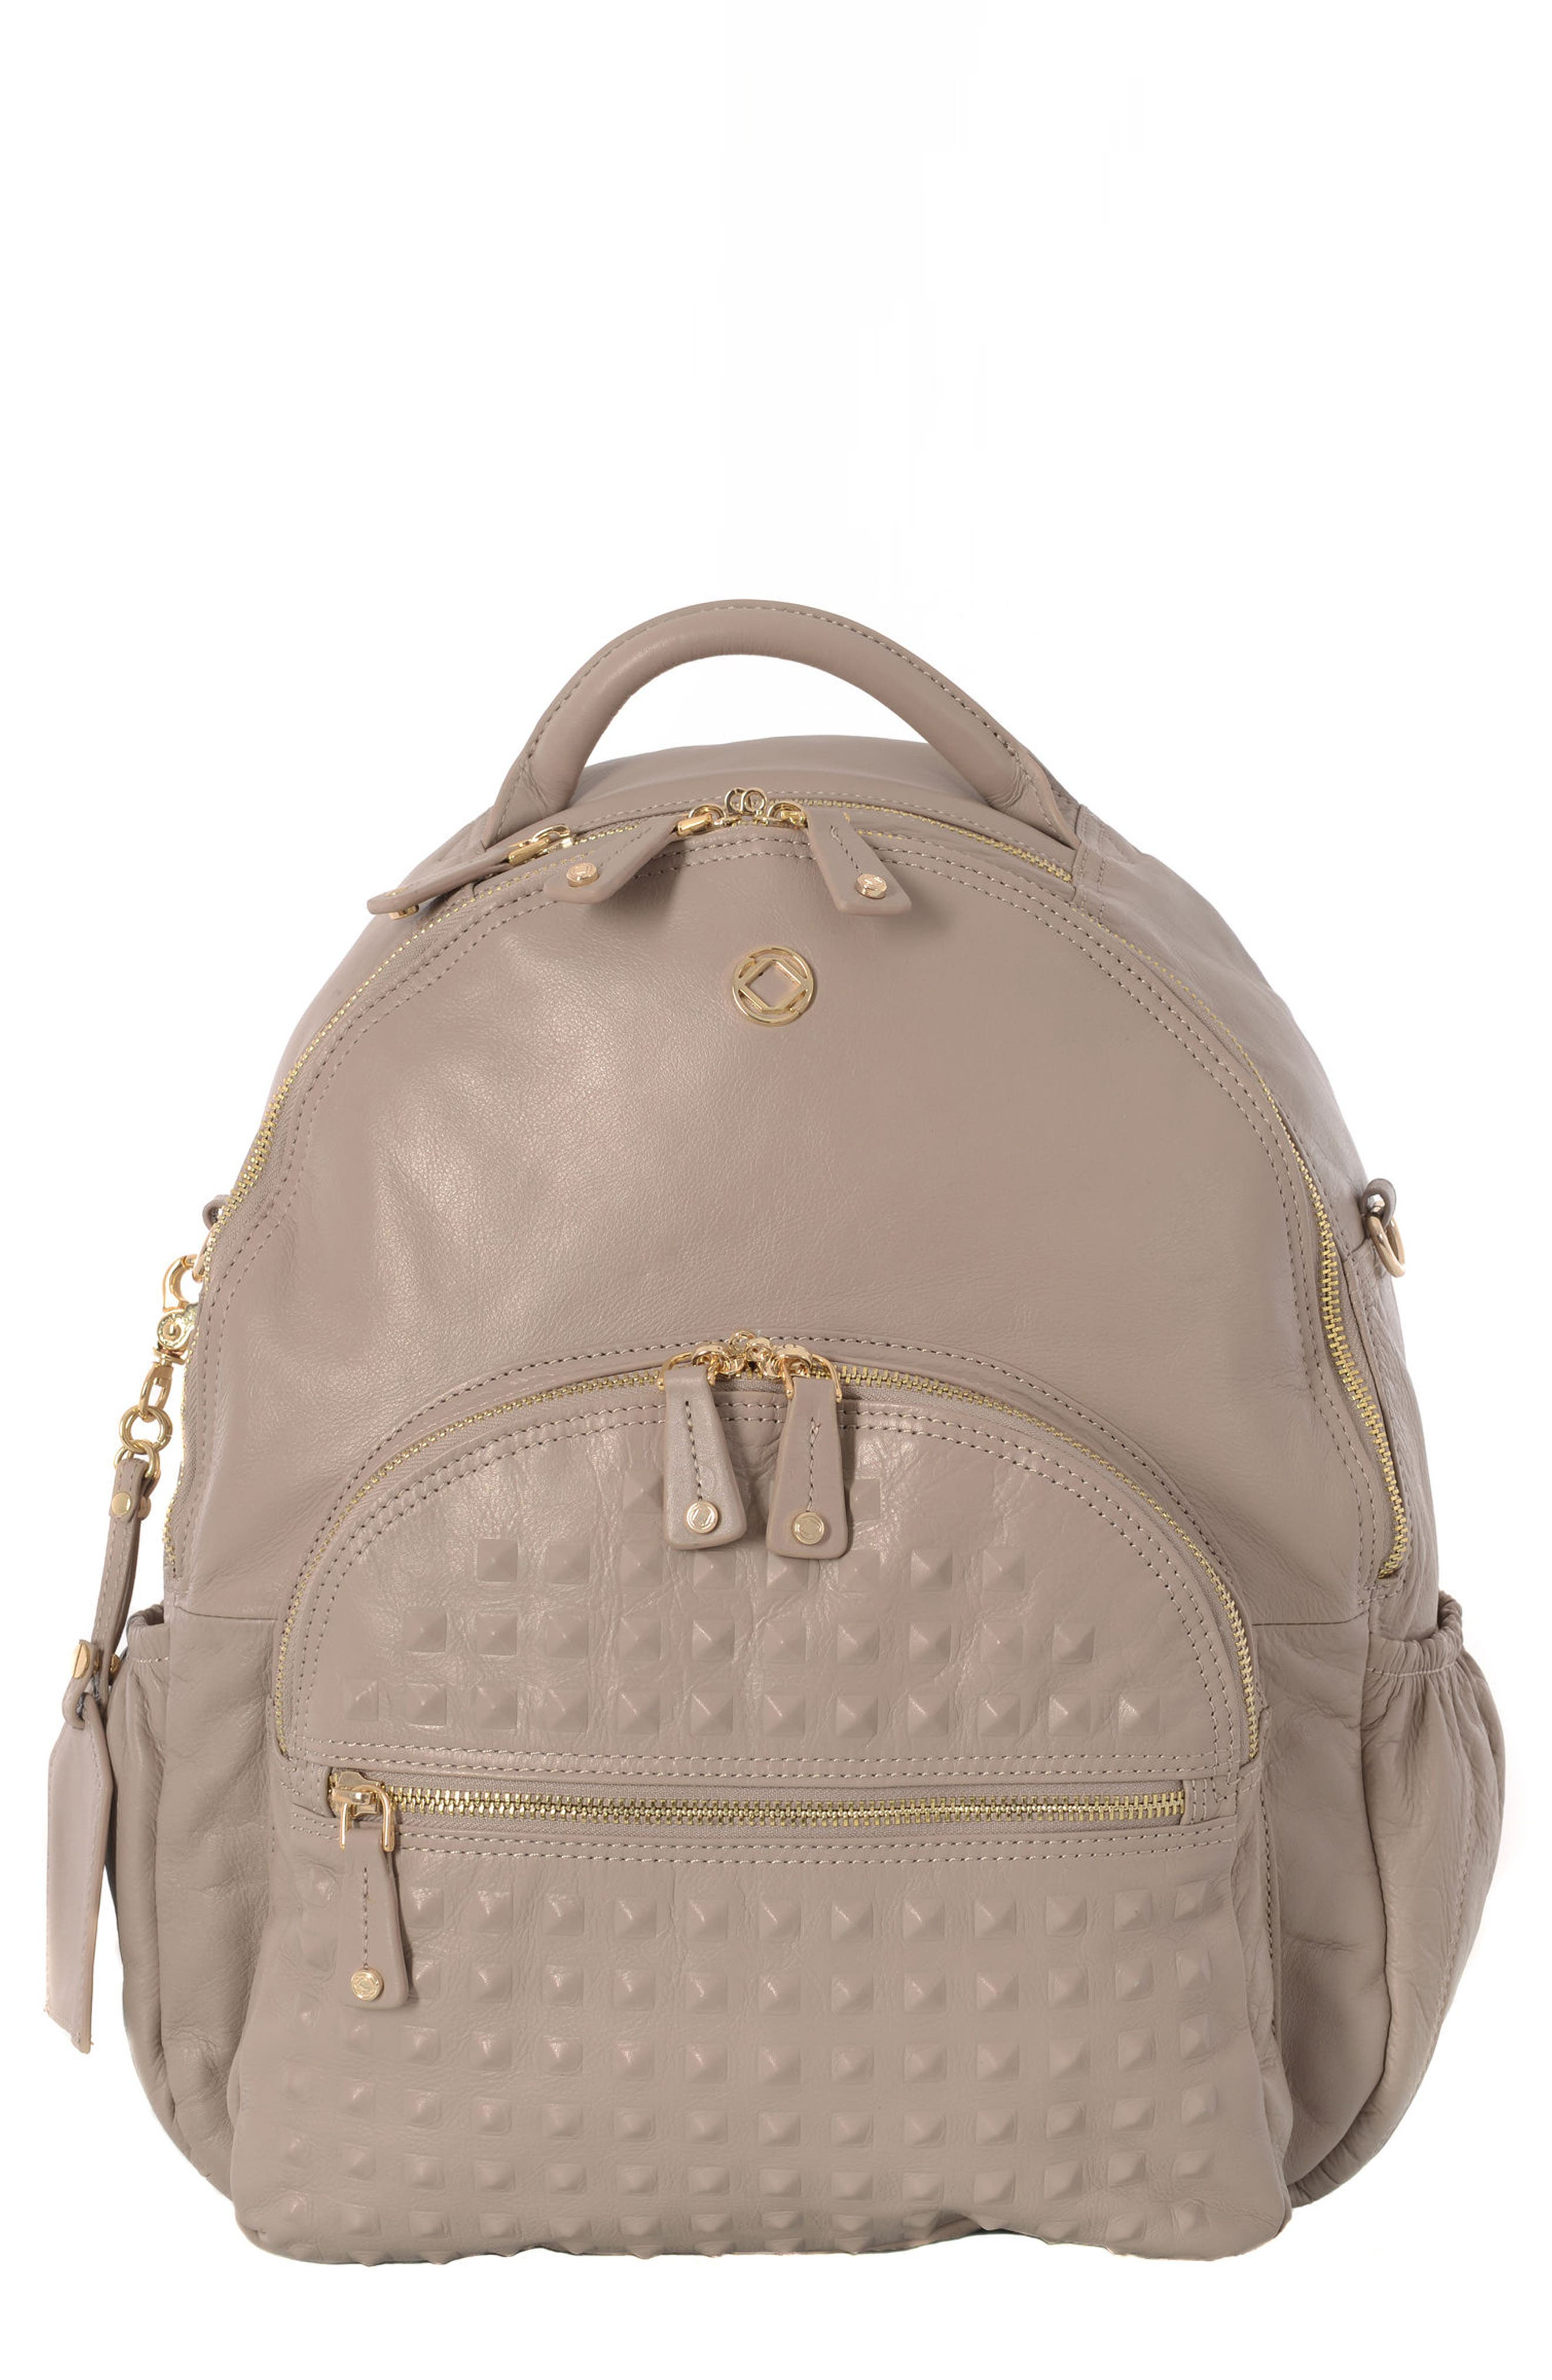 Joy Studded Diaper Backpack,                             Main thumbnail 1, color,                             TAUPE WITH GOLD HARWARE